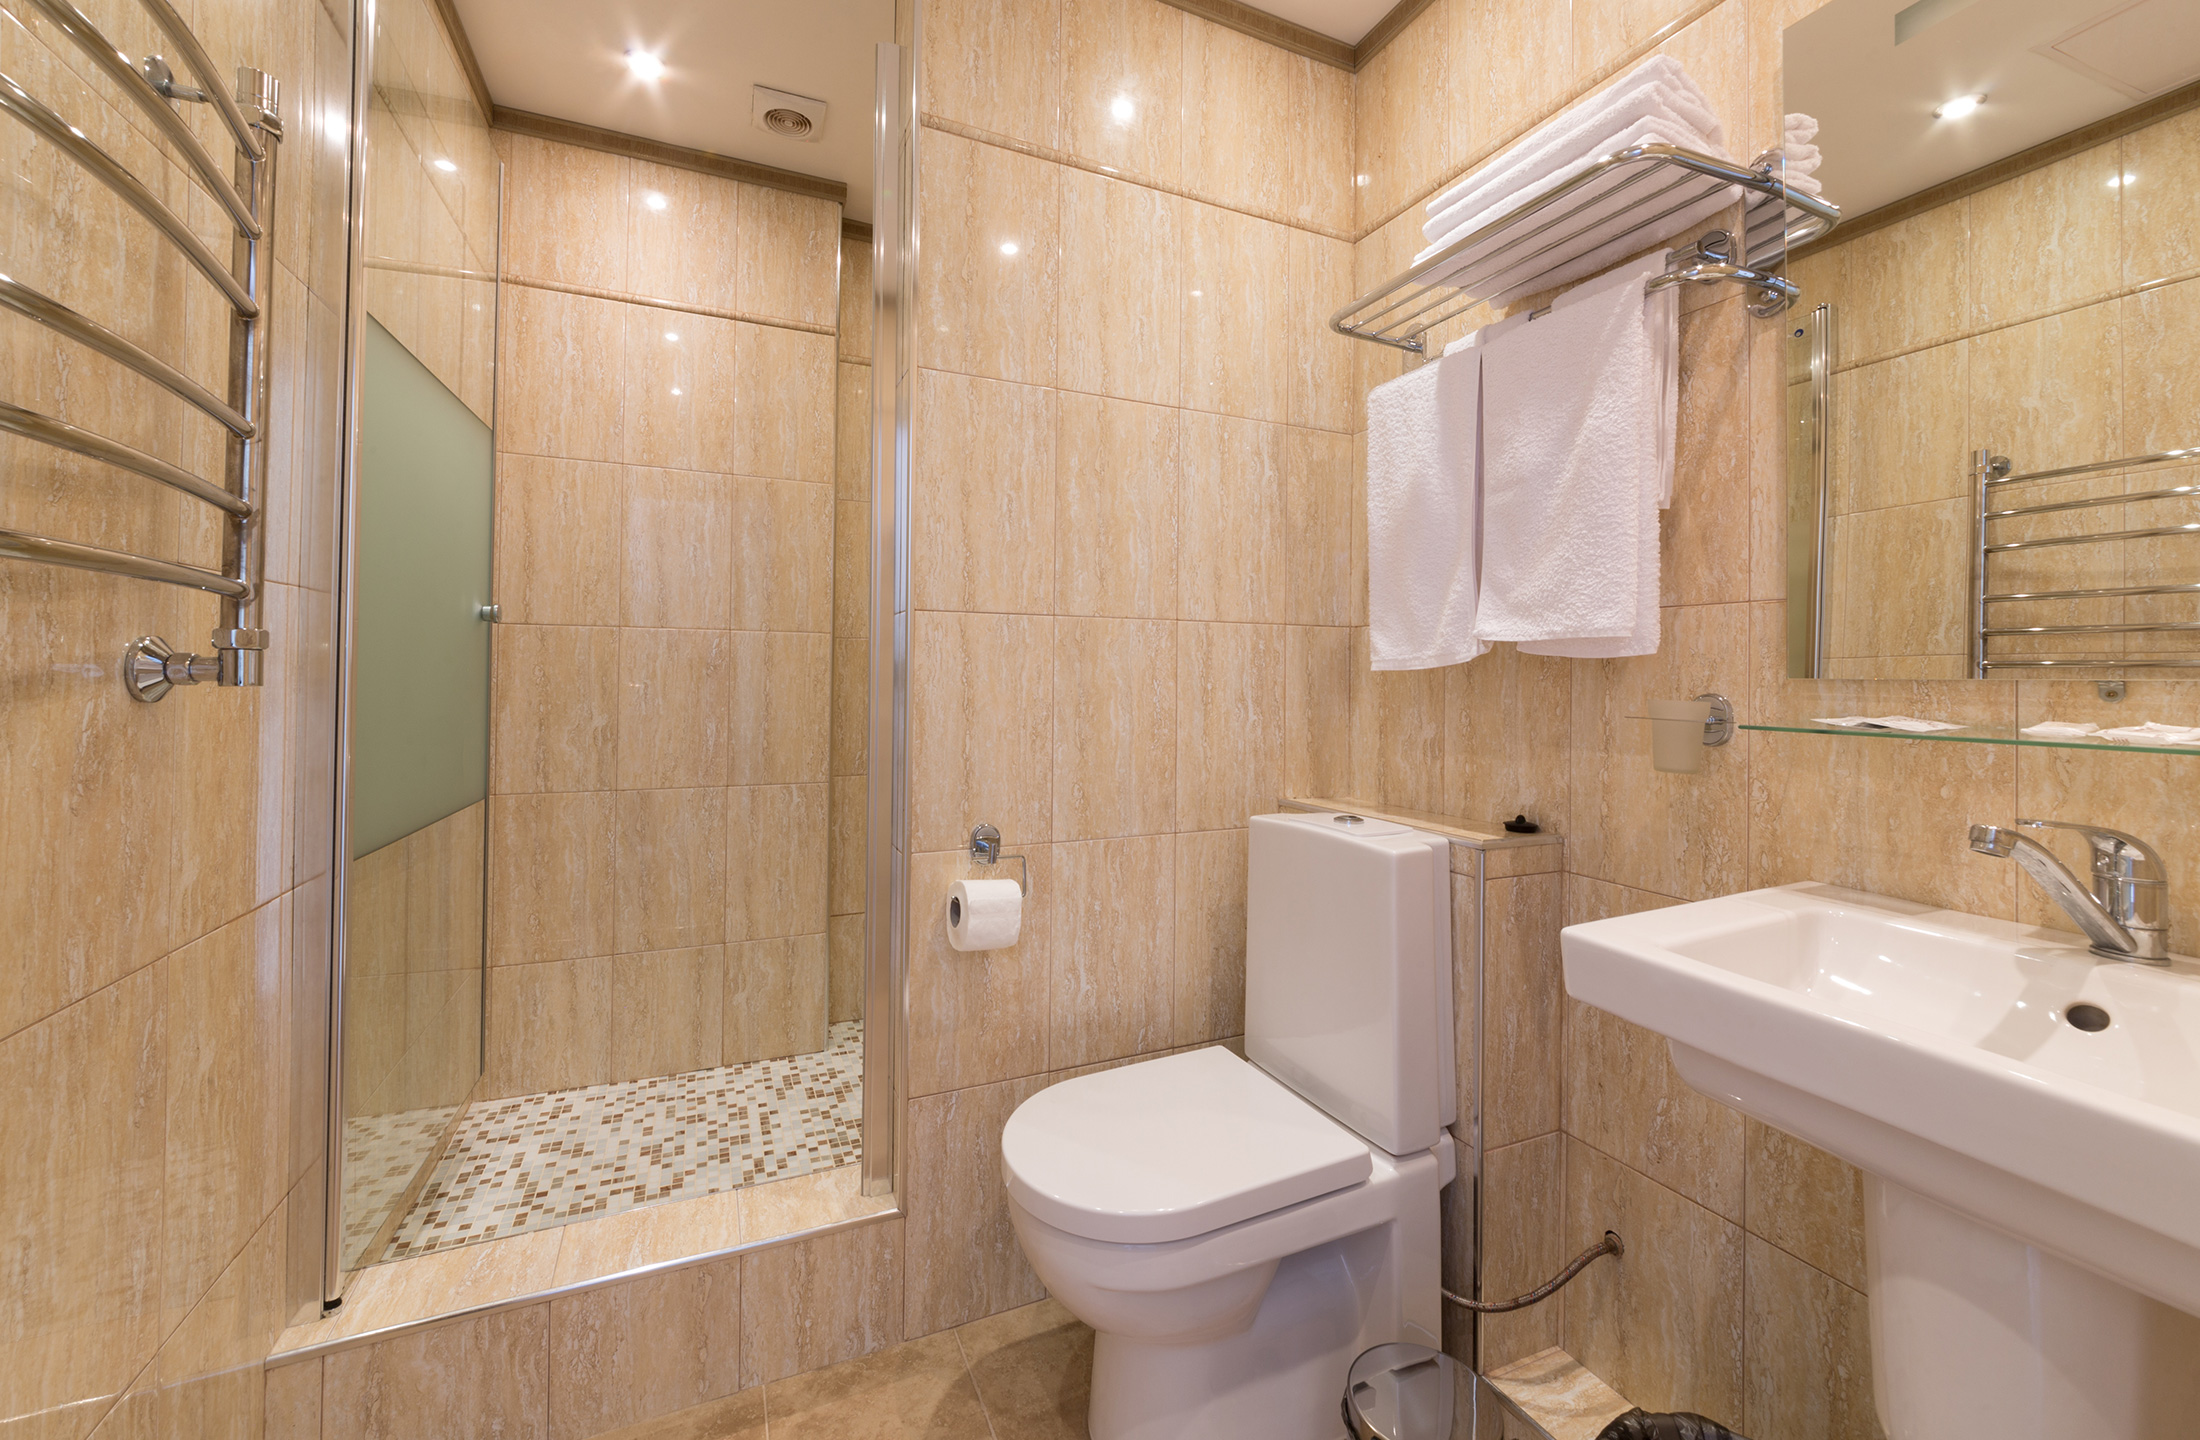 Tile Contractor Mosaic Marble Condo Remodeling Panama City FL - Bathroom remodeling panama city beach